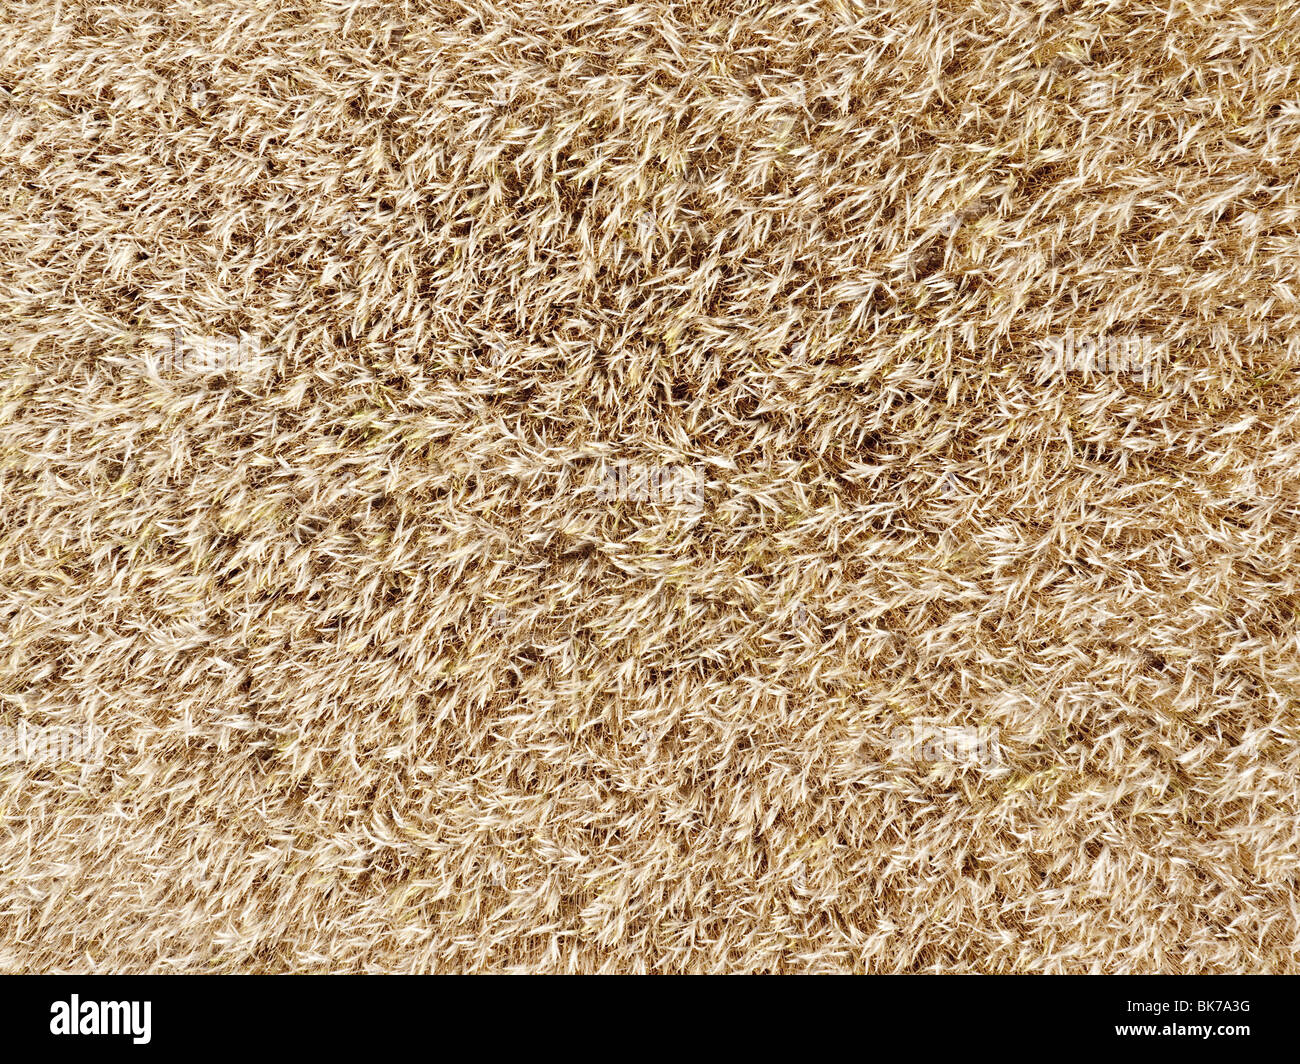 AERIAL: Huge Harvested Wheat Field In Sunny Summer Stock Footage ...